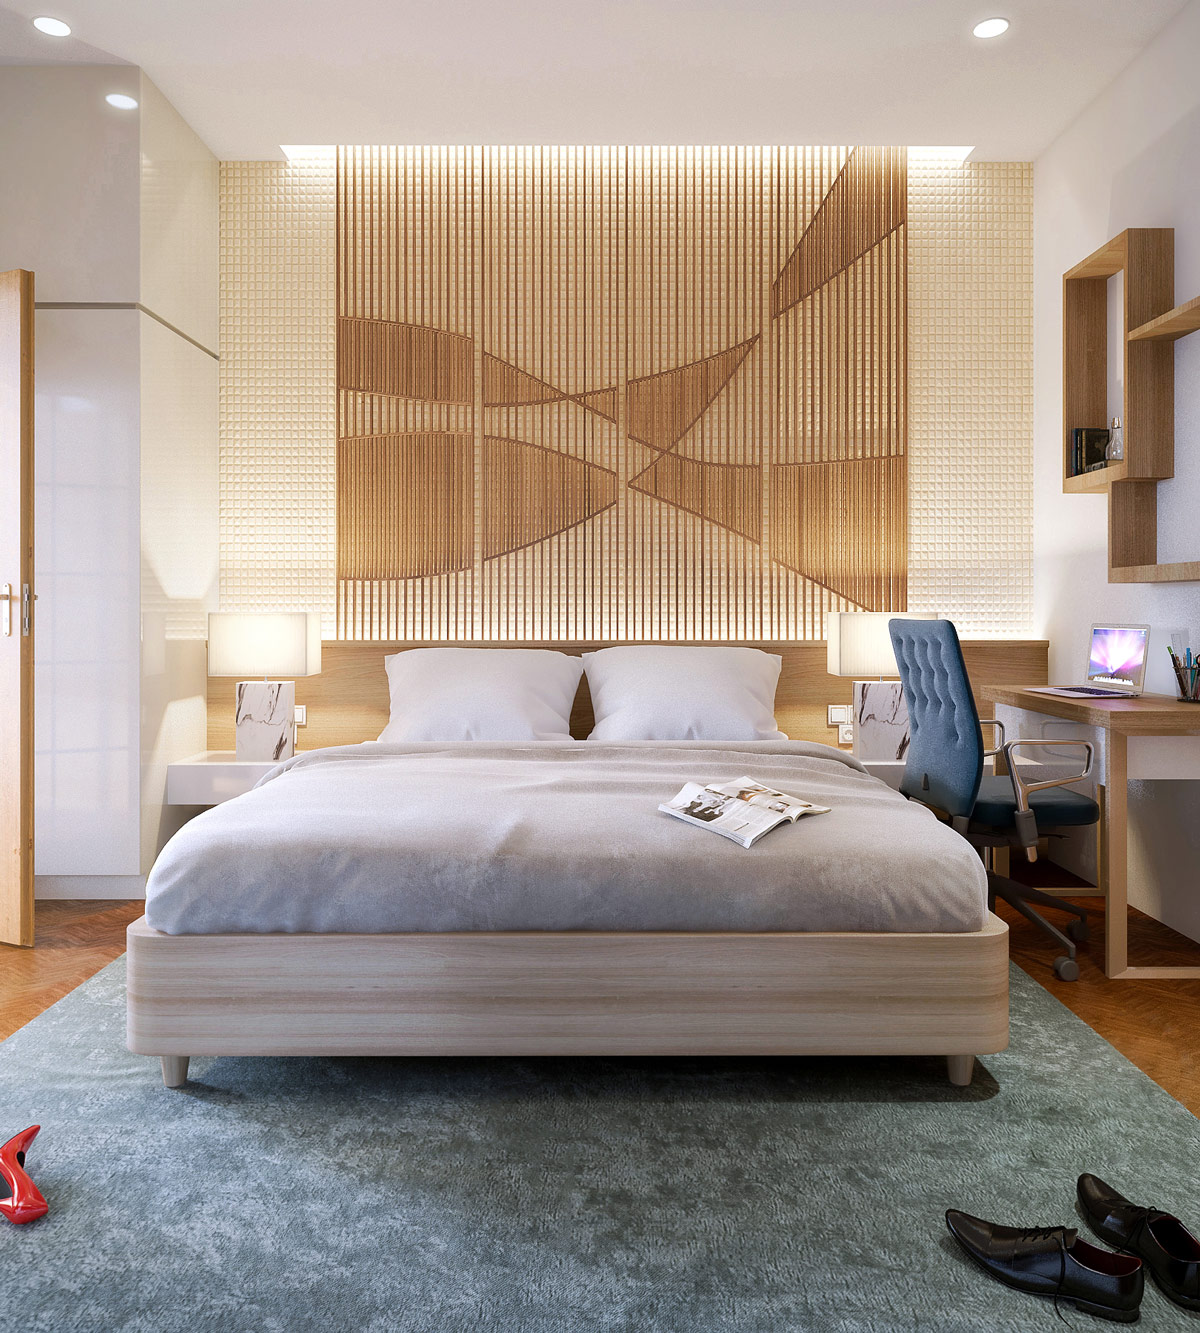 Wood Accent Wall Bedroom Ideas: 25 Beautiful Examples Of Bedroom Accent Walls That Use